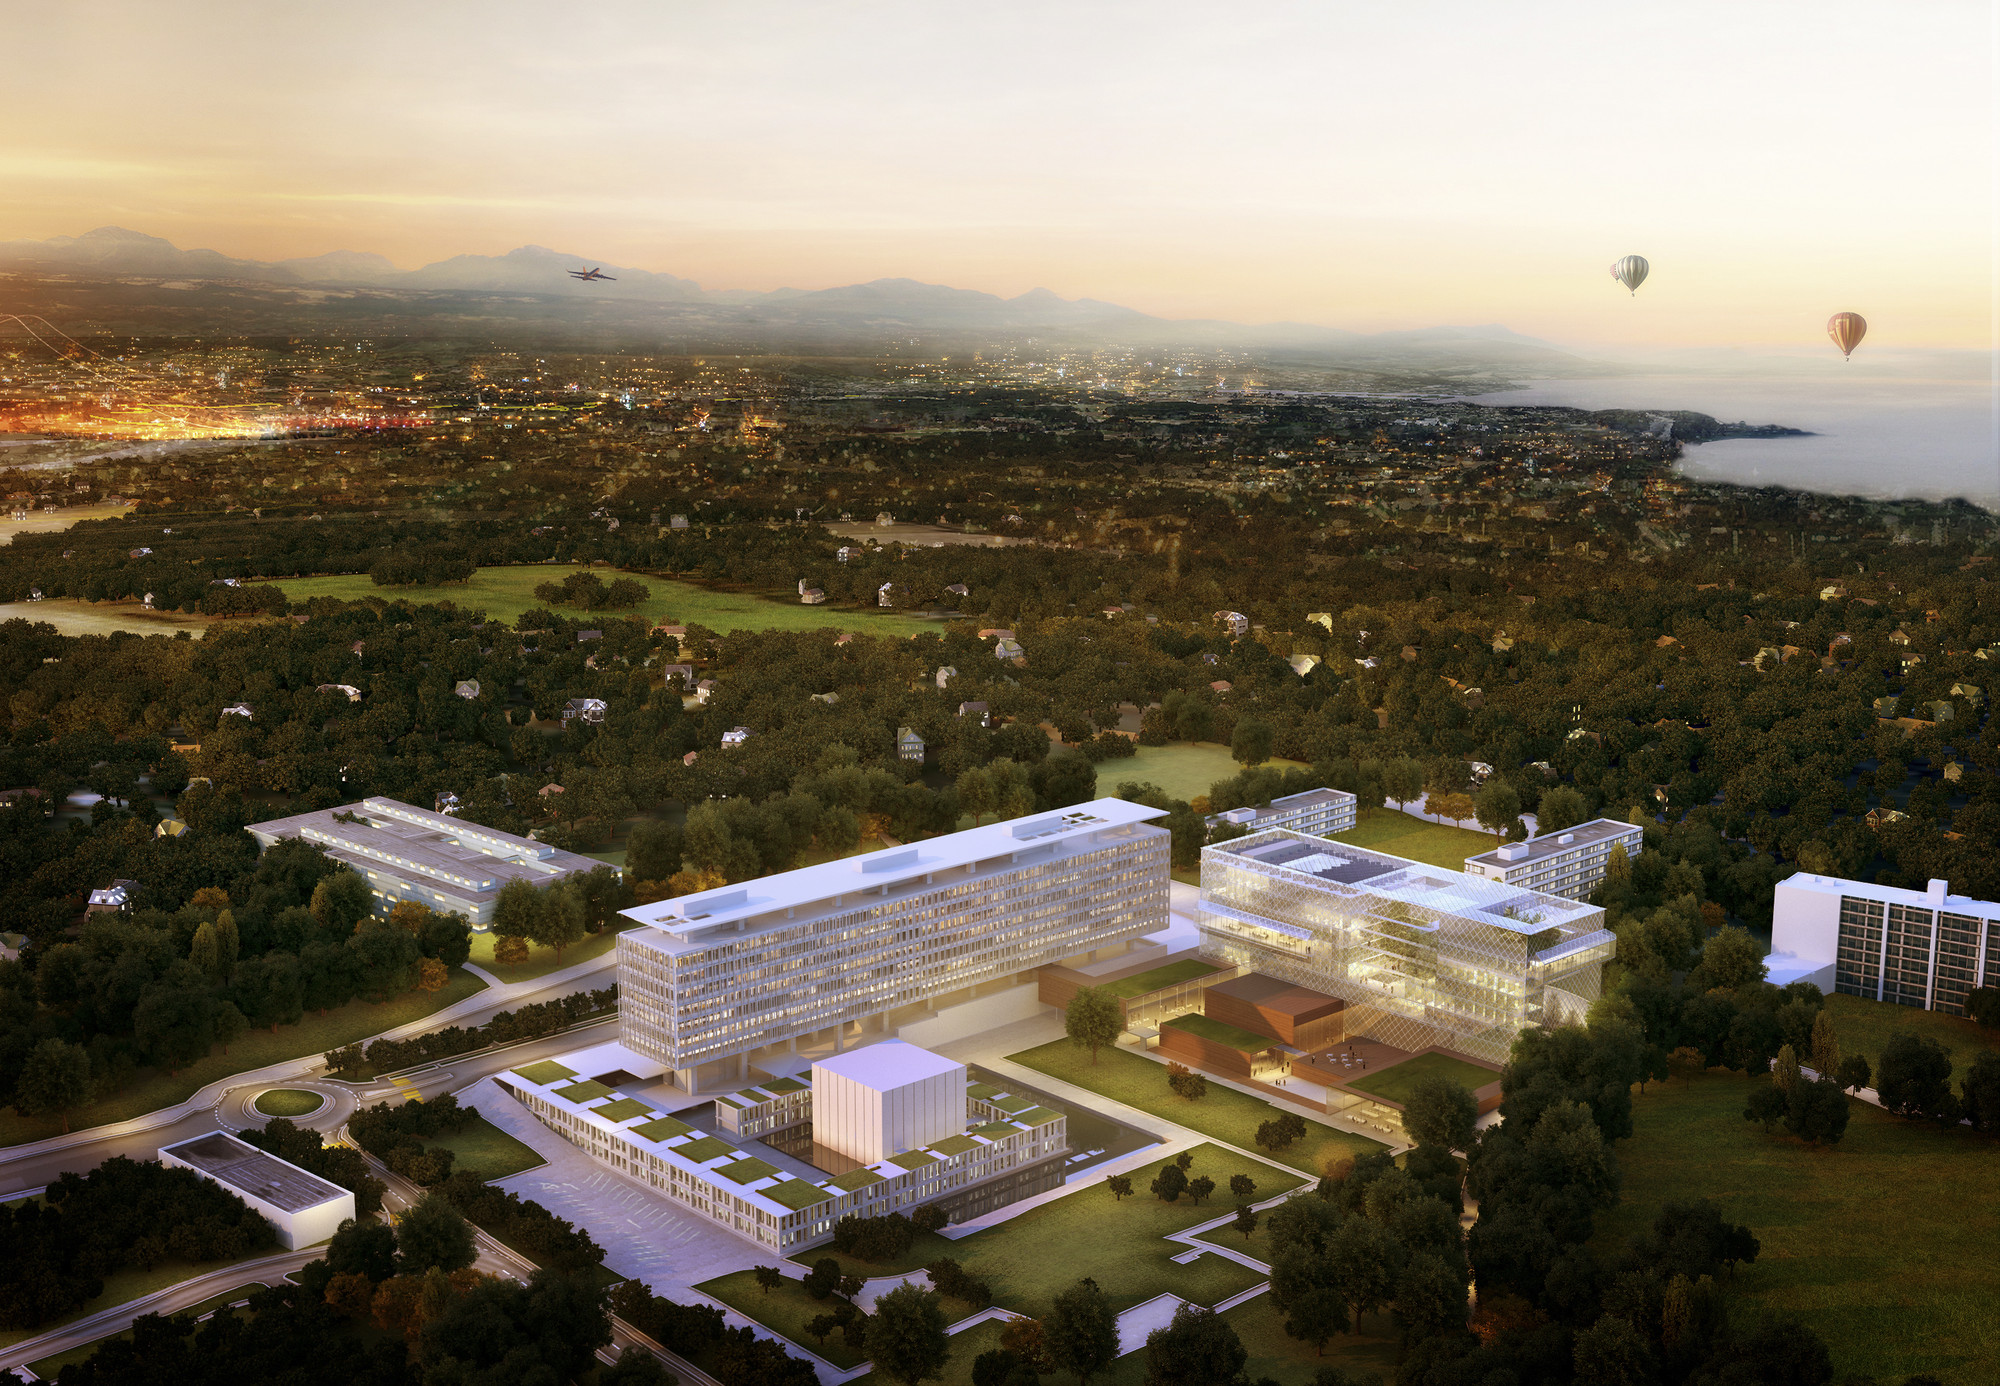 Competition Entry: Latitude Studio Consolidates Office Space at WHO's Geneva Headquarters, WHO Headquarters after intervention. Image Courtesy of Latitude Studio